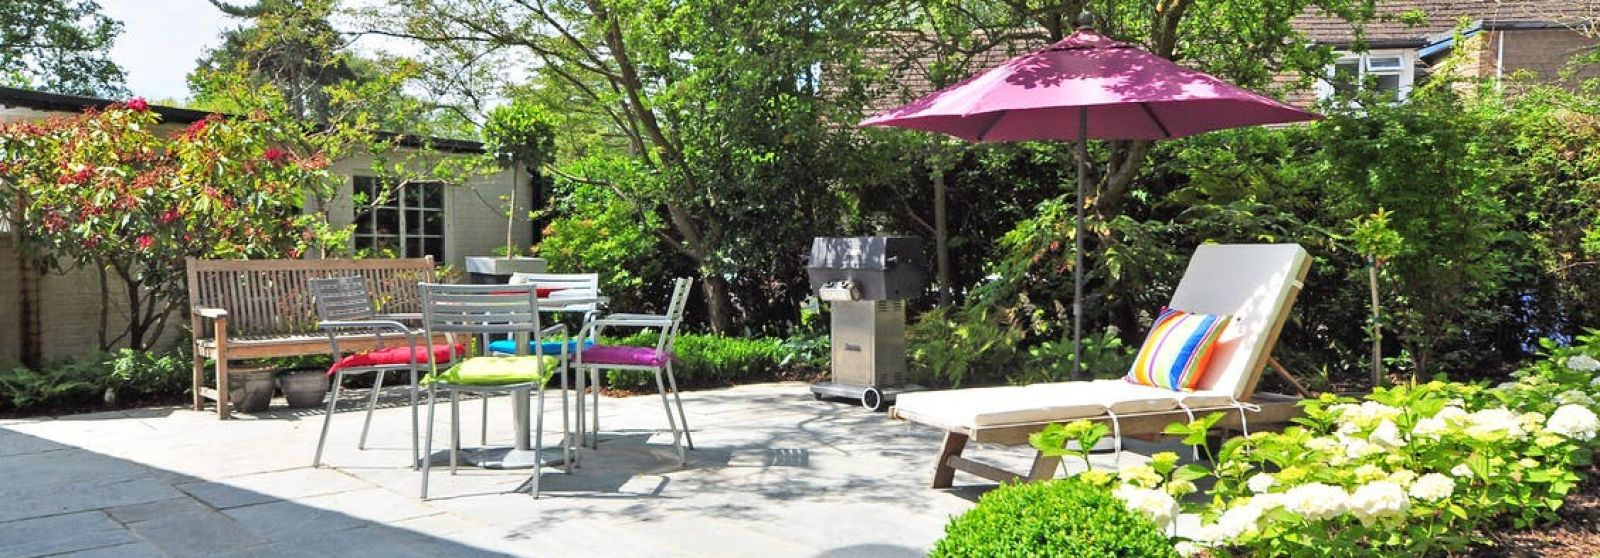 Tips for Hosting a Safe Outdoor Party